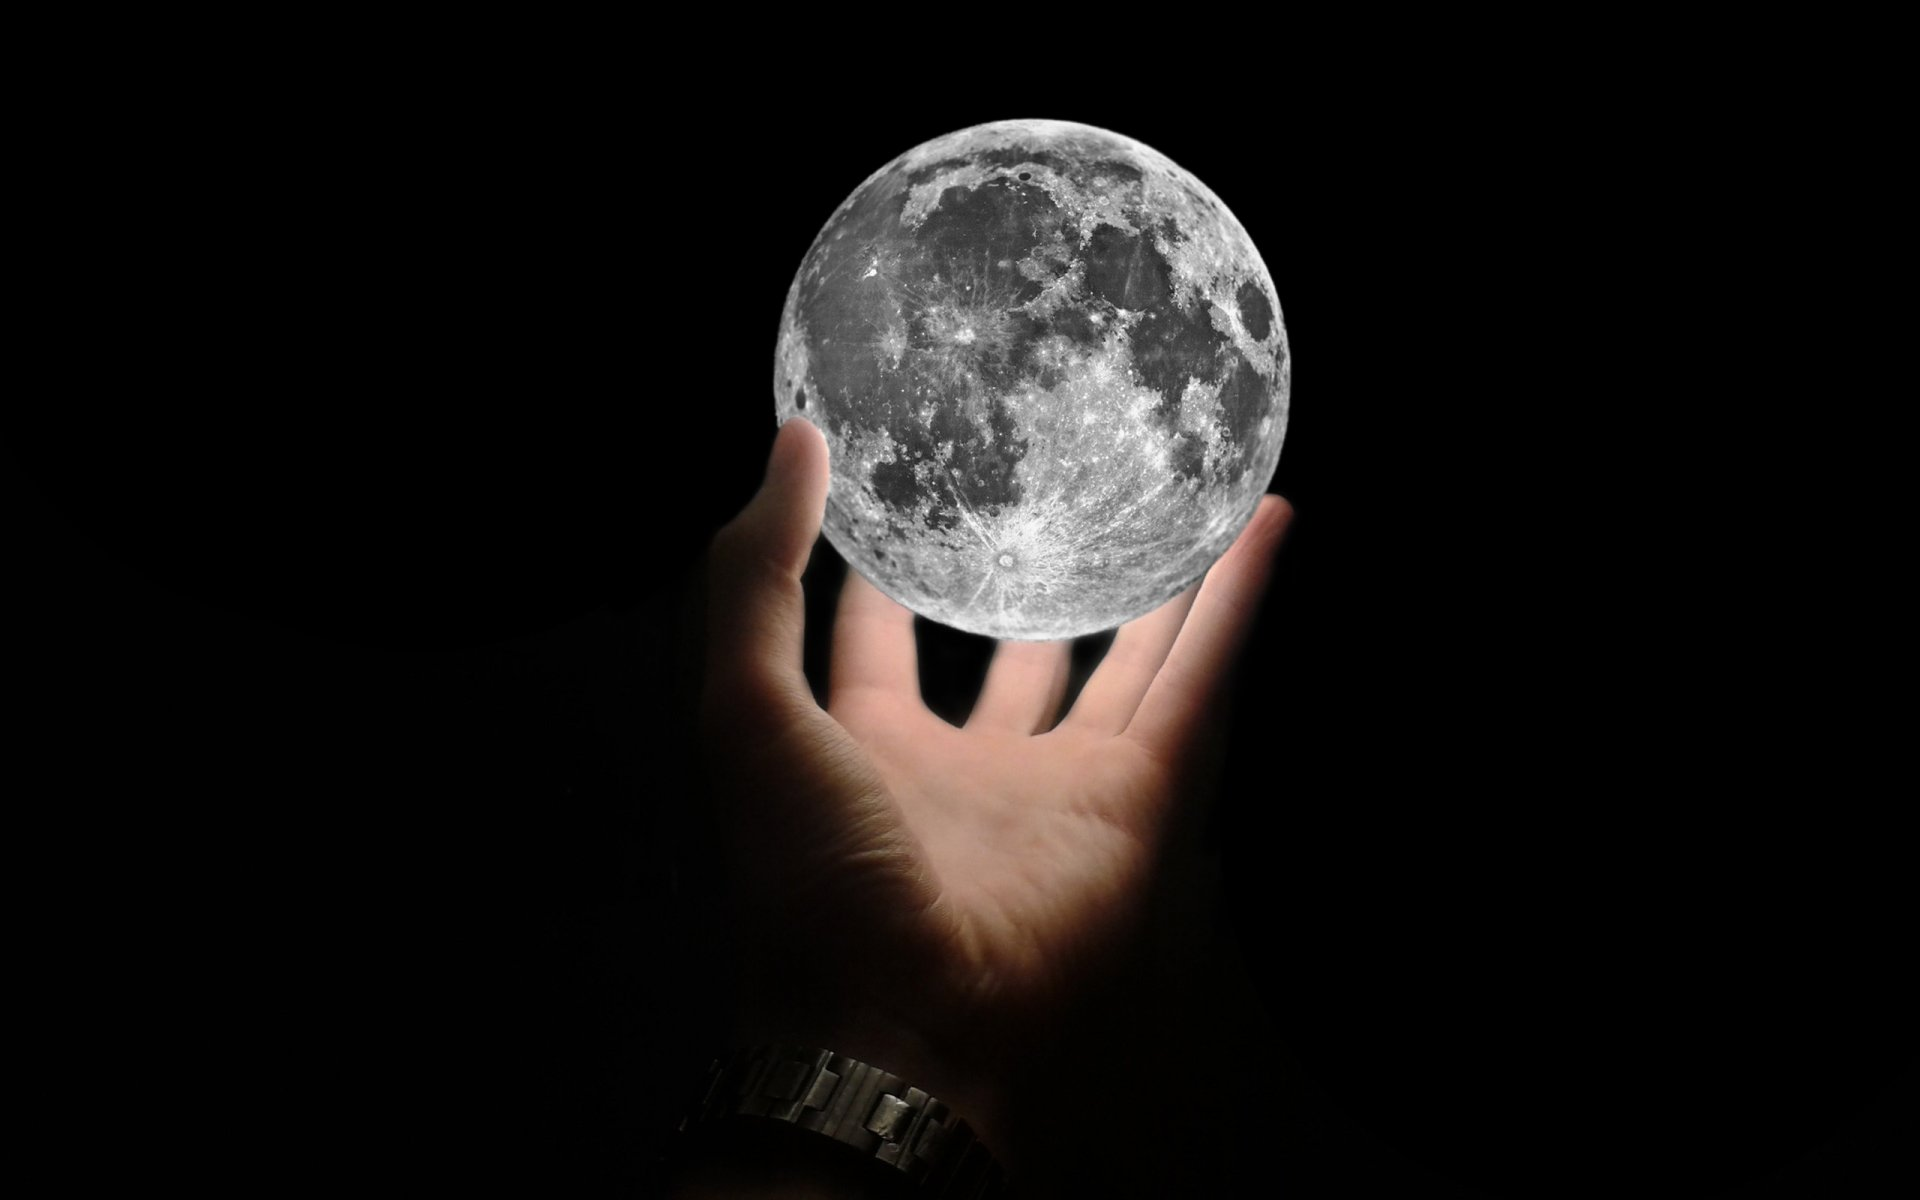 moon satellite hand background black wallpaper widescreen full screen hd wallpapers fullscreen